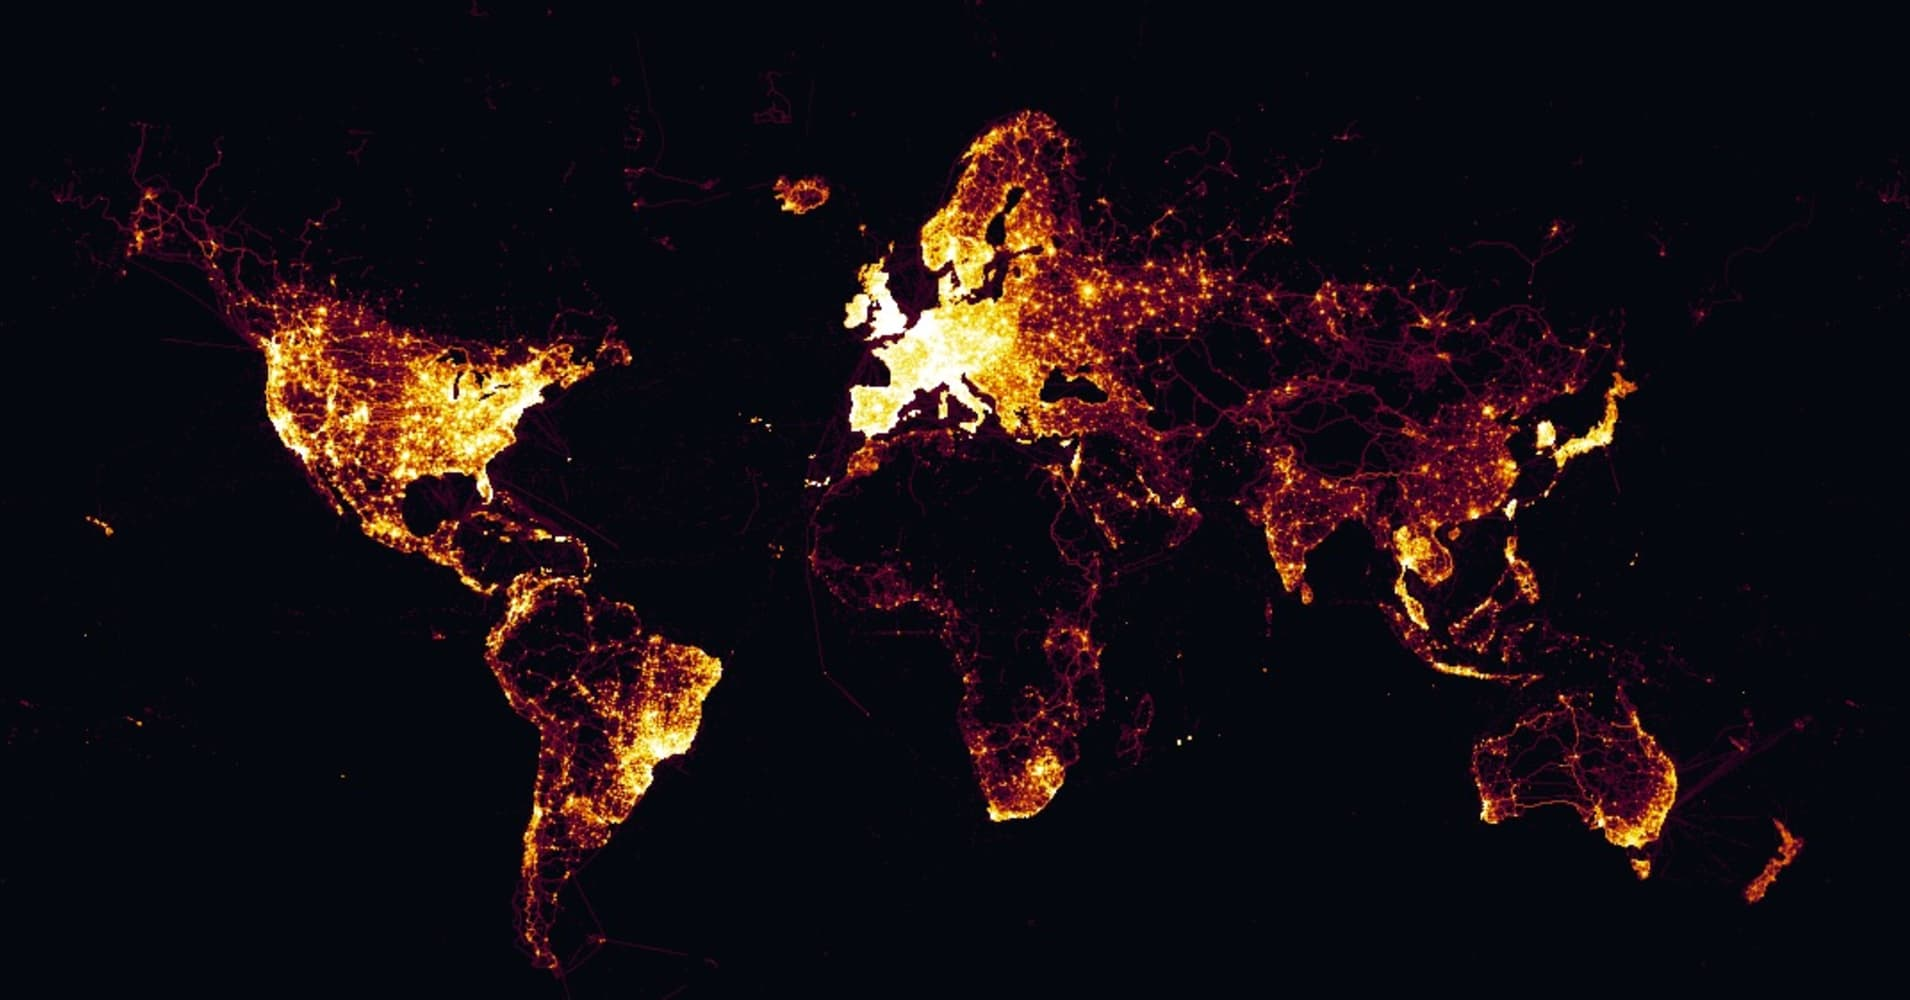 Heat Map Of Us.Global Heat Map For Joggers Exposing Sensitive Us Military Information